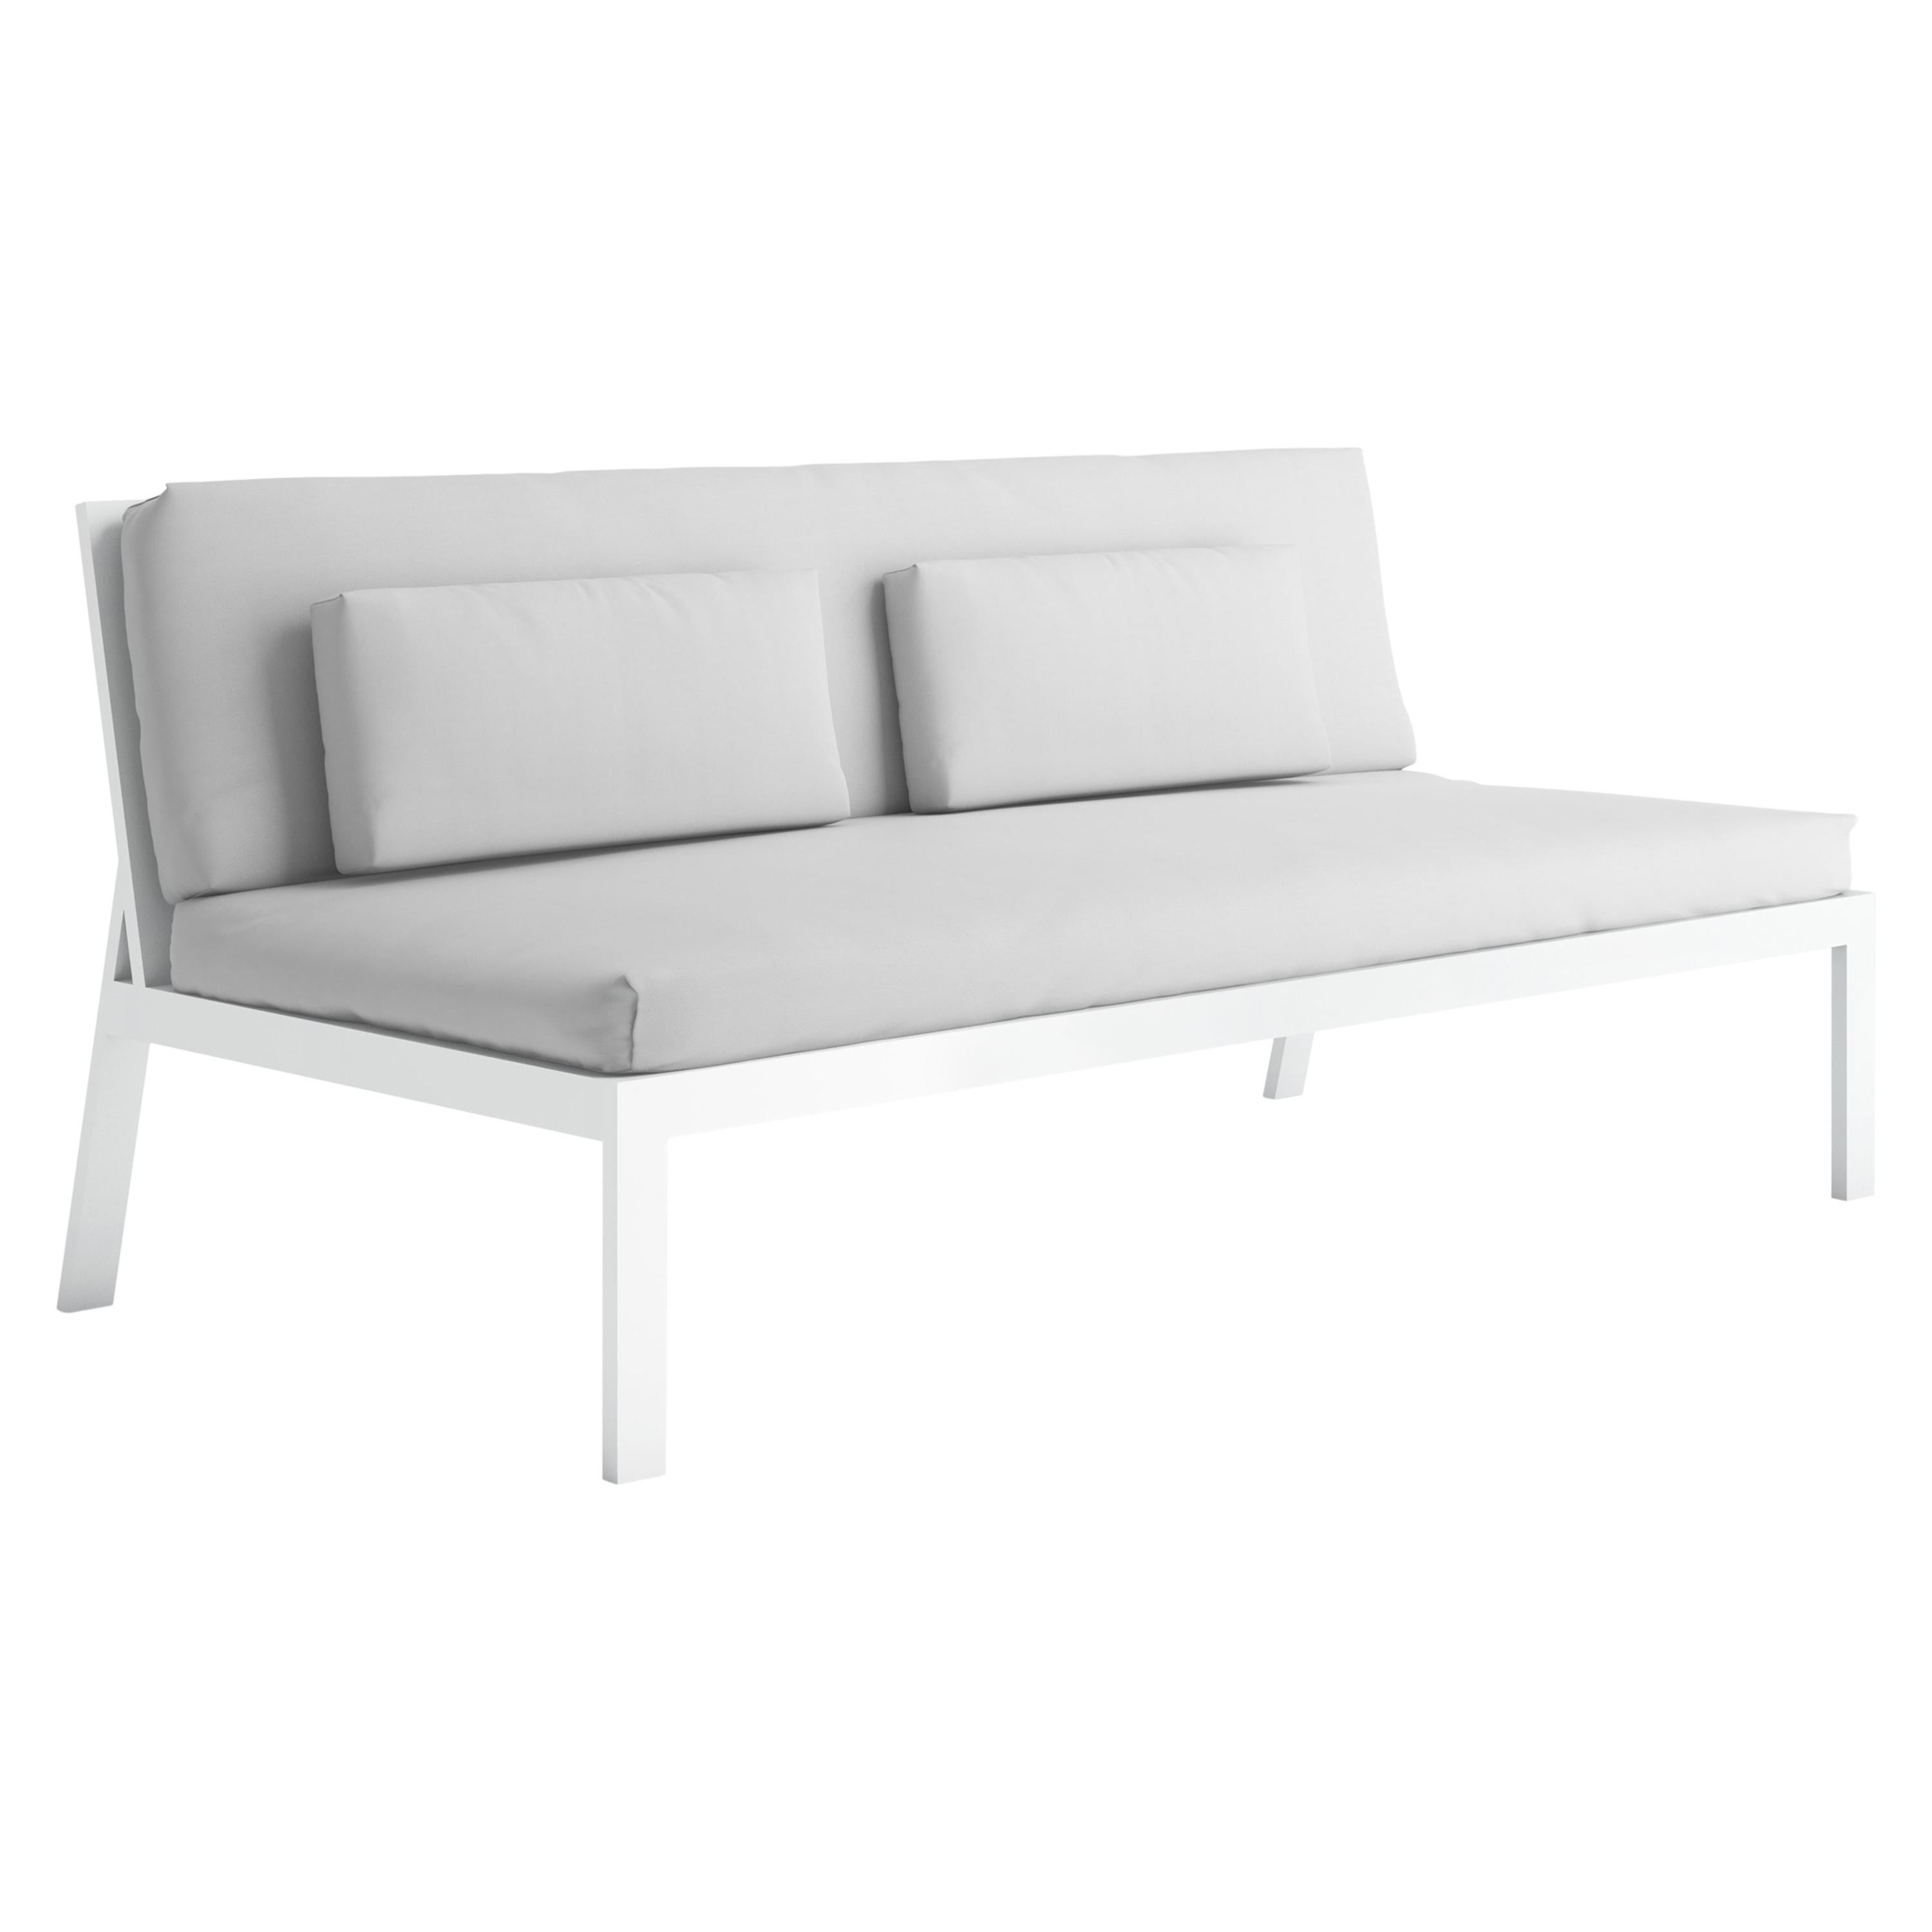 Fantastic Timeless Sectional Sofa 3 In Gray By Borja Garcia And Jose A Gandia Blasco Ncnpc Chair Design For Home Ncnpcorg